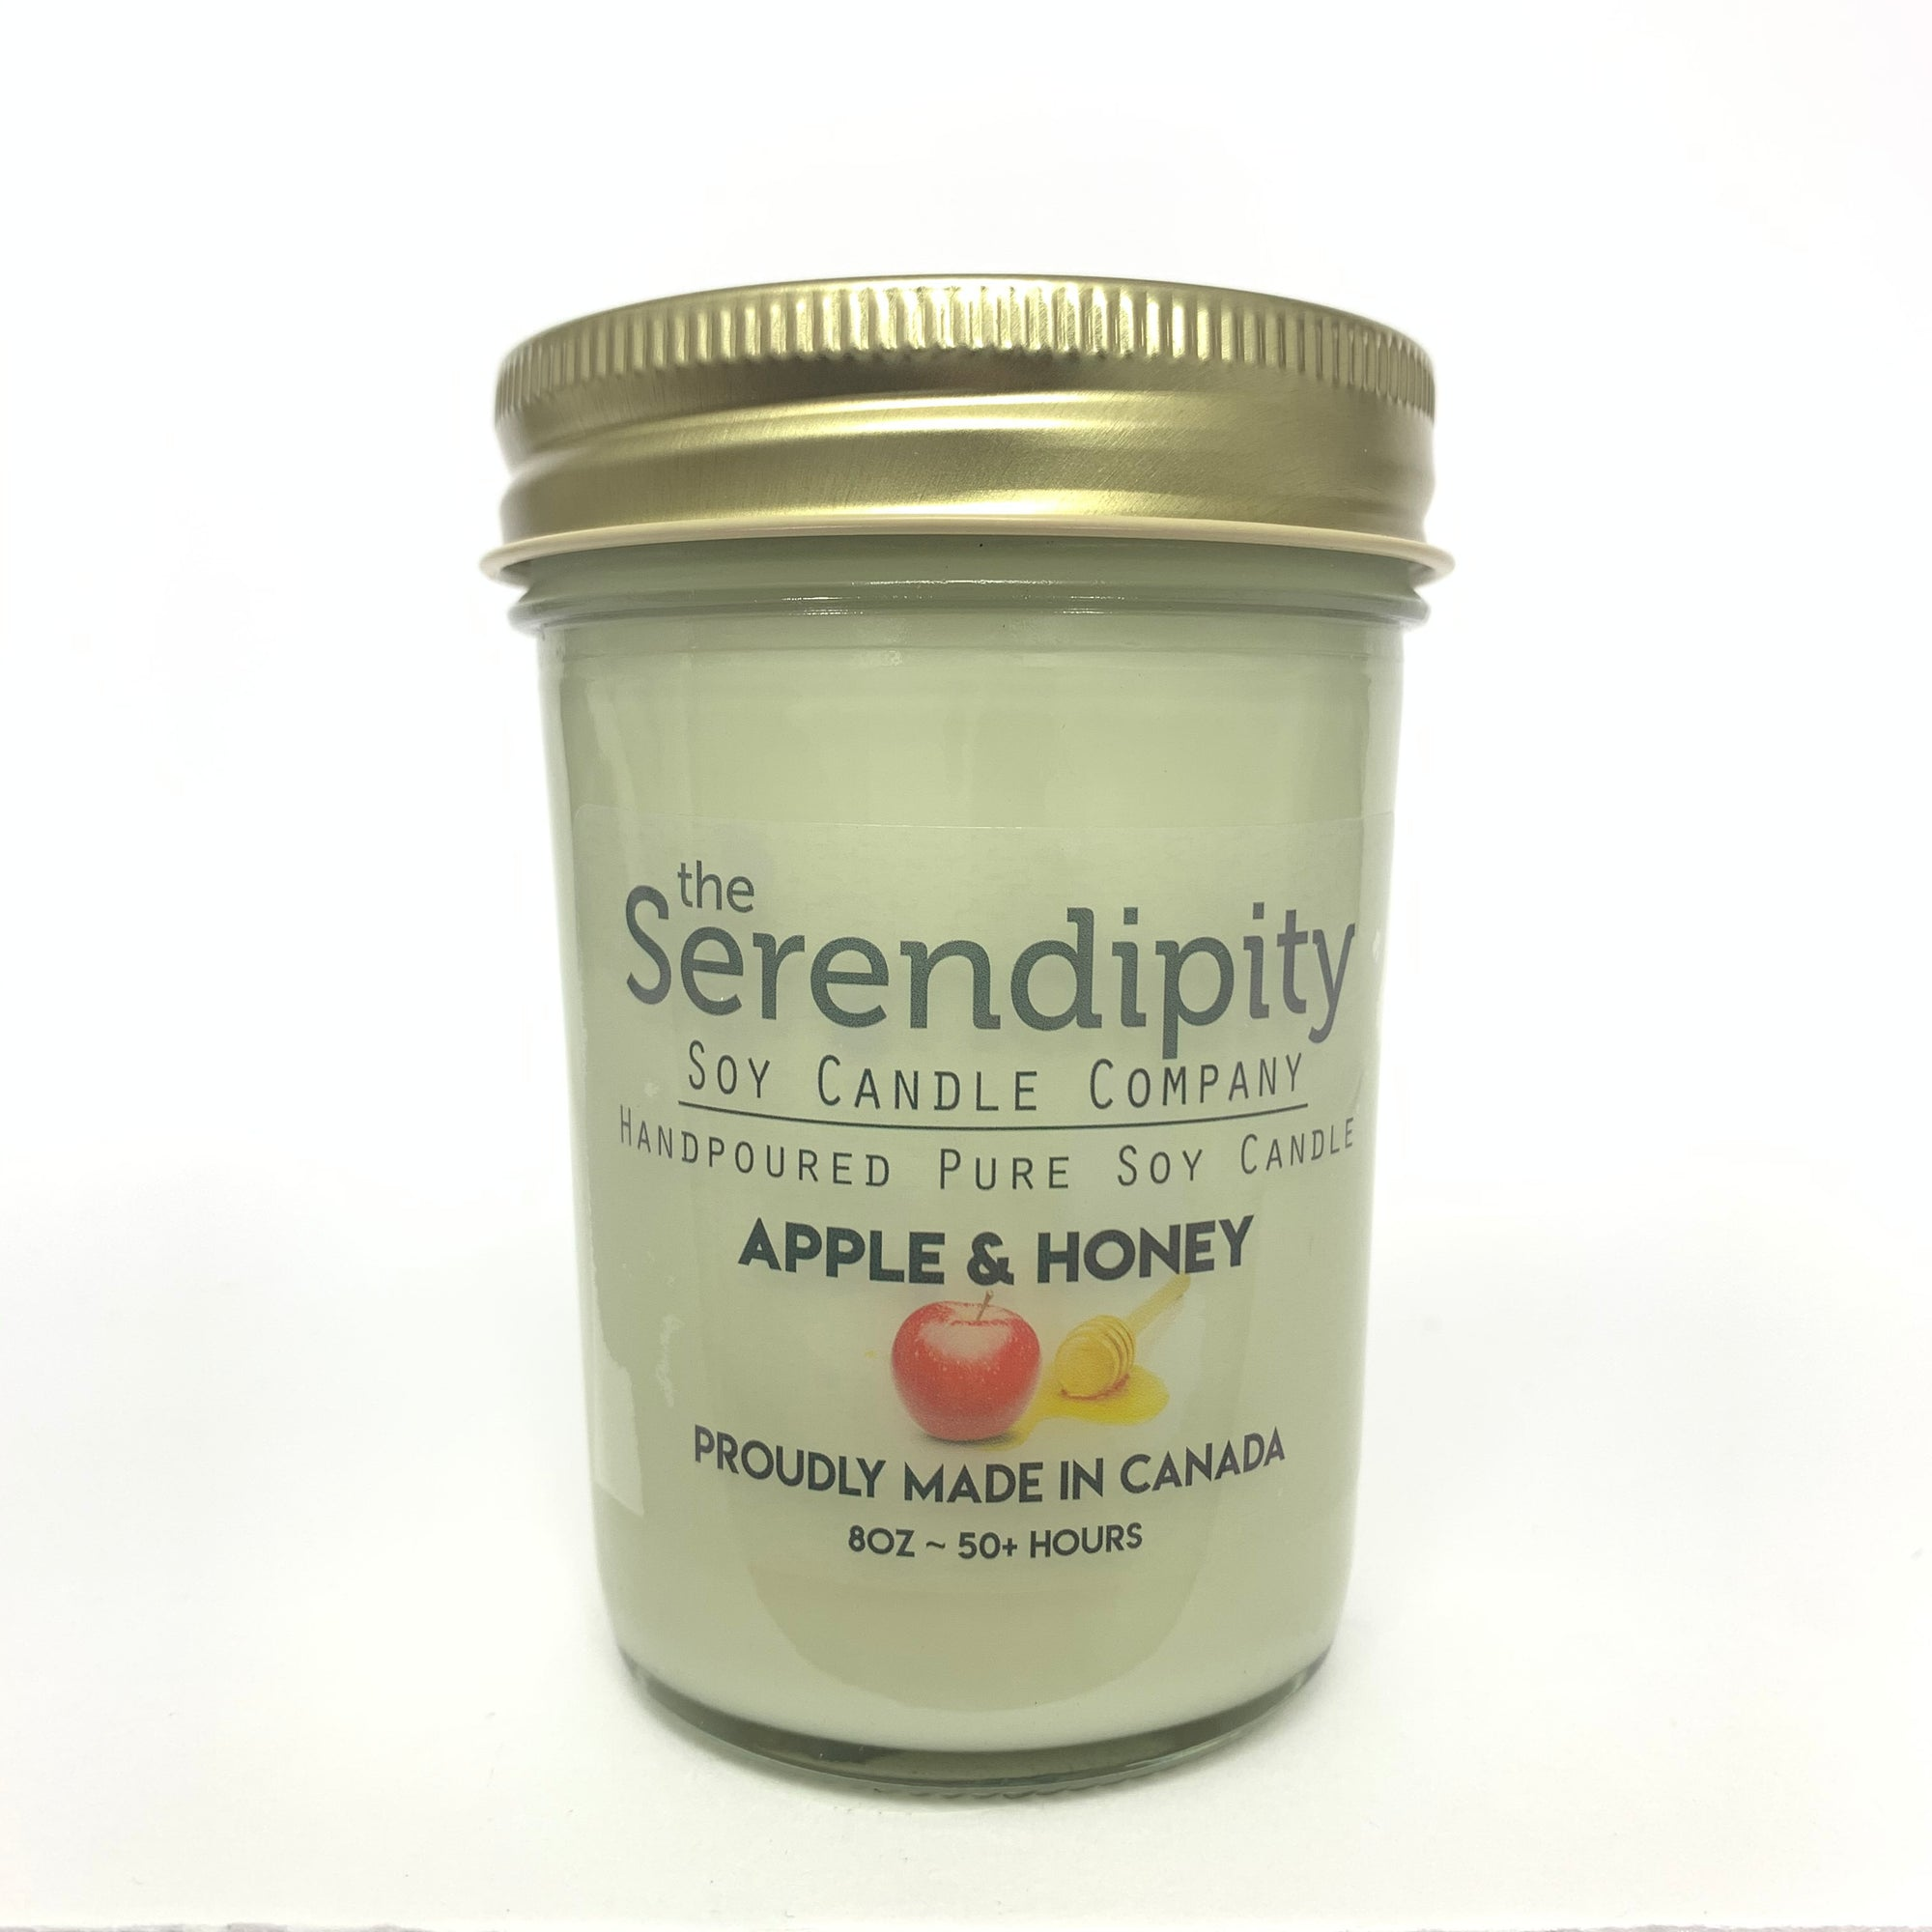 Apple & Honey